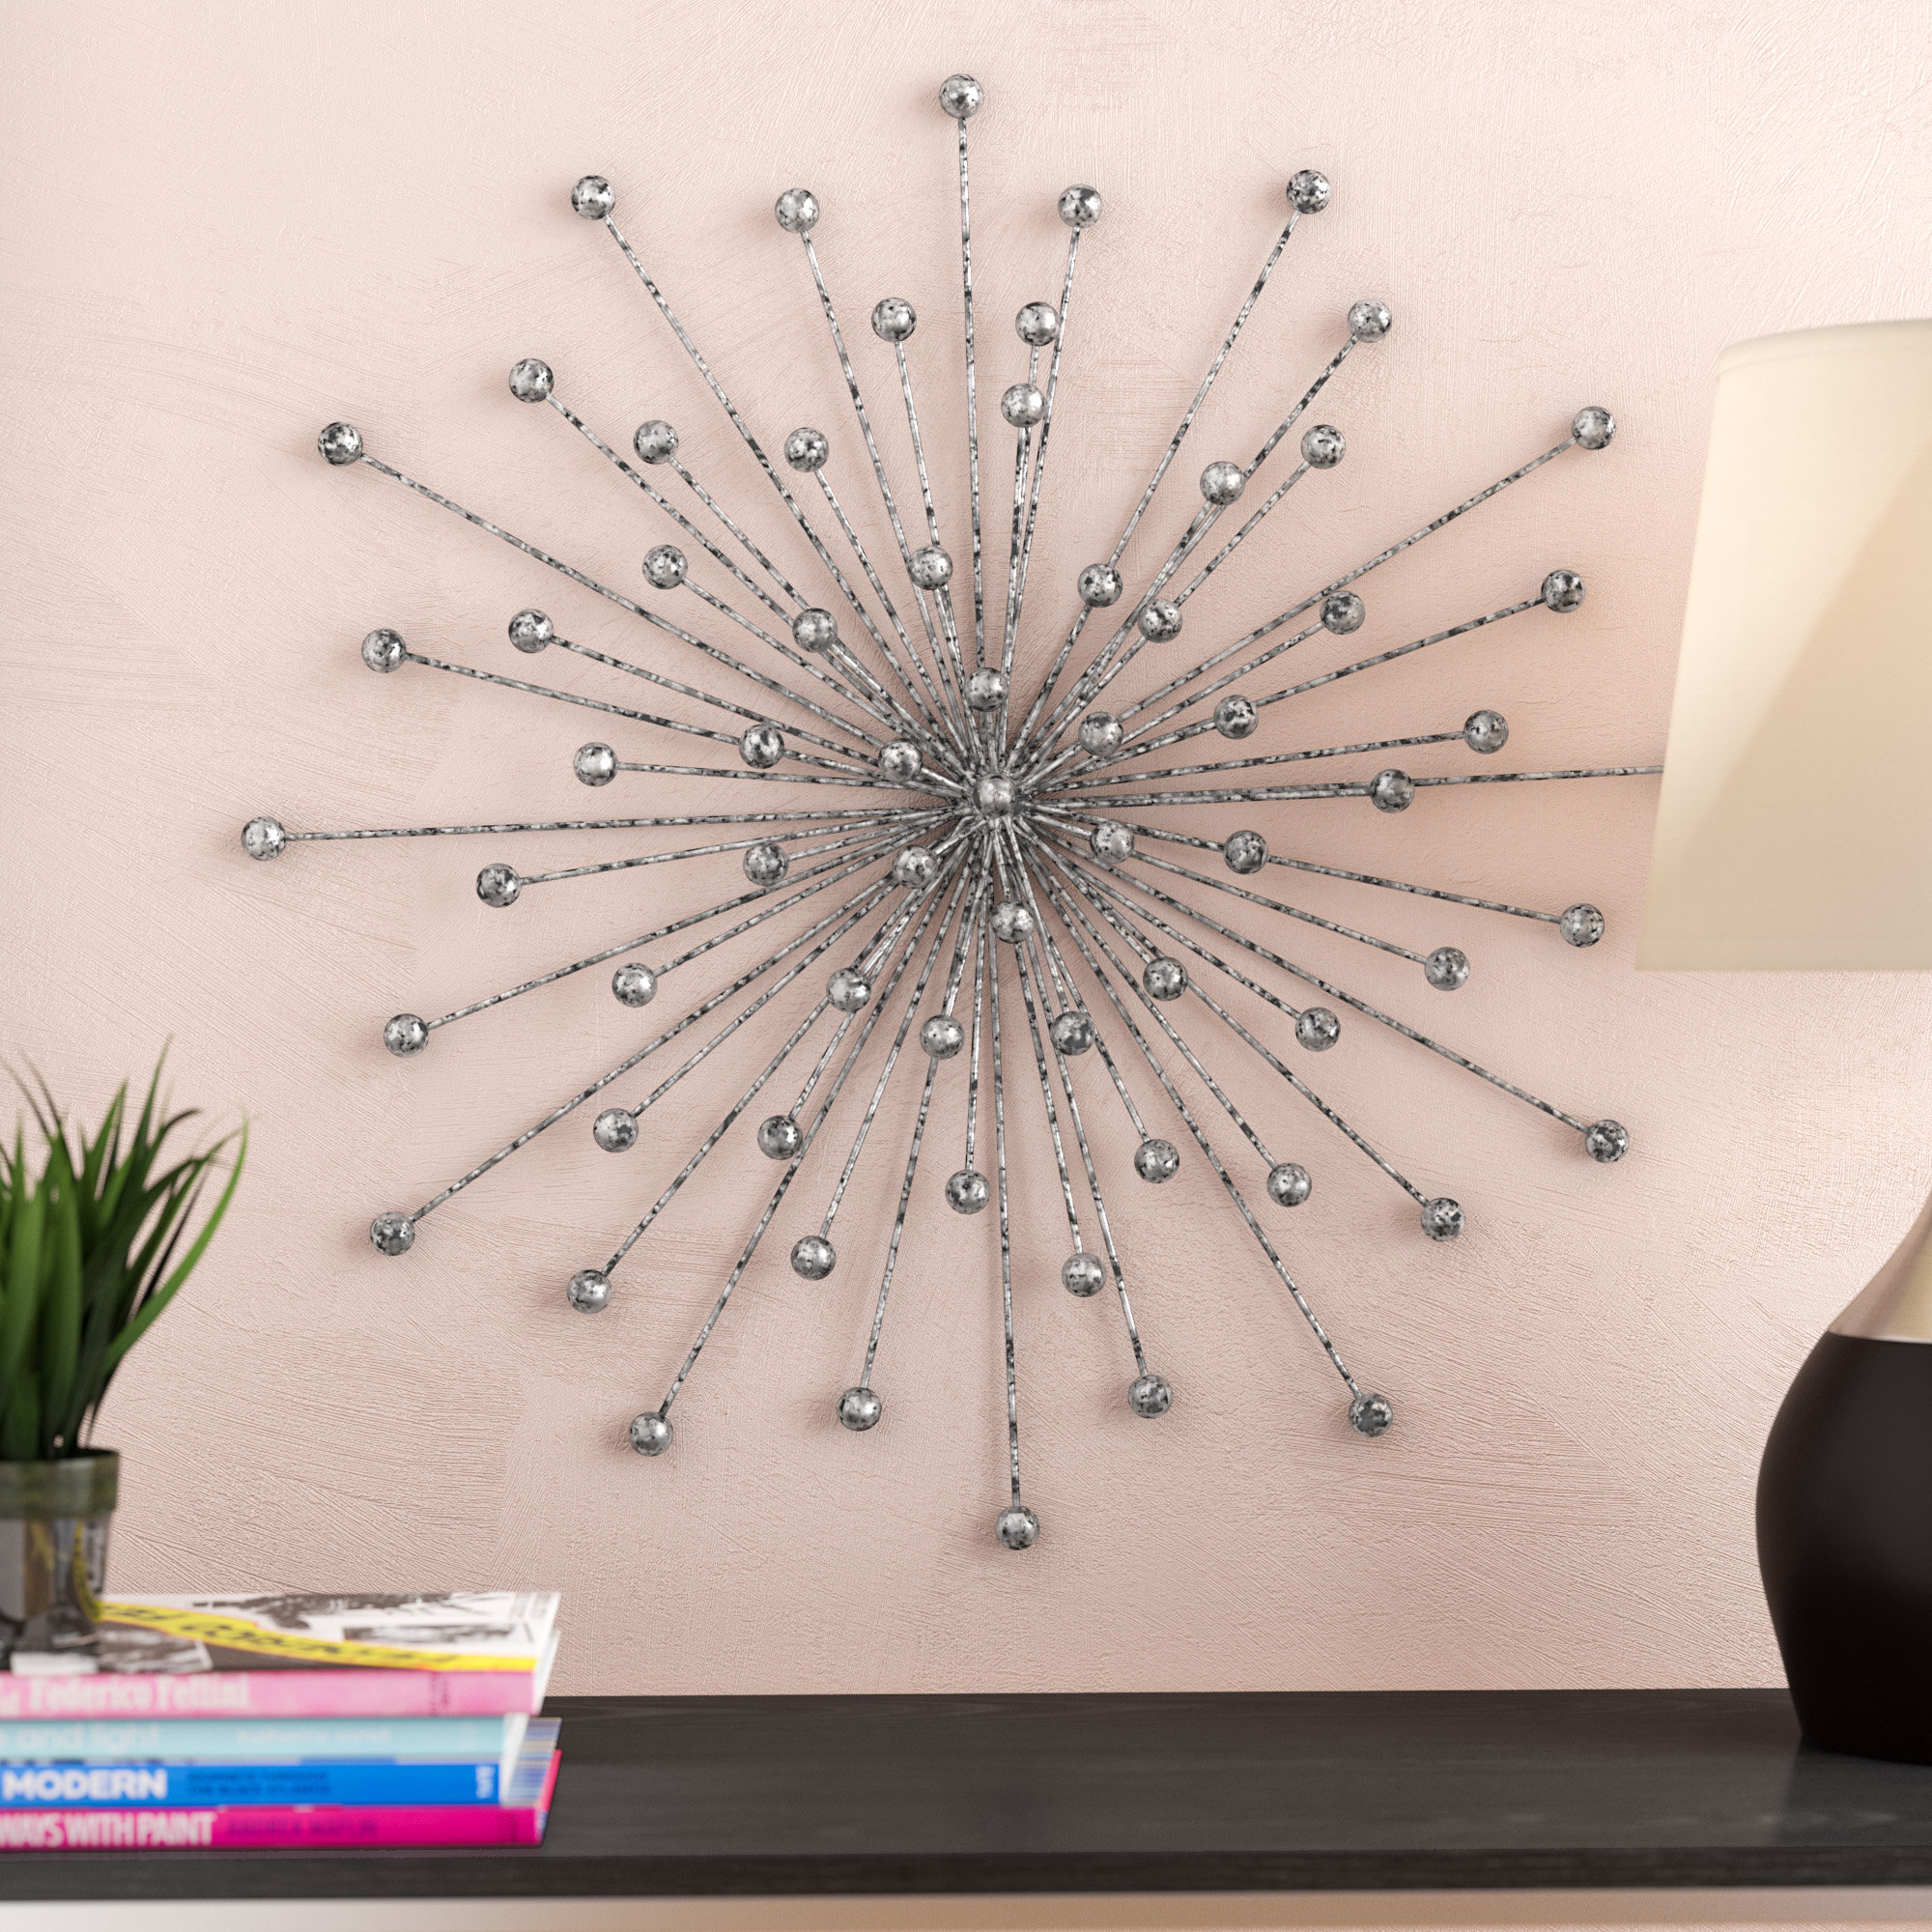 3 Piece Acrylic Burst Wall Decor Sets (Set Of 3) Throughout Preferred Wrought Studio Burst Wall Décor & Reviews (View 7 of 20)